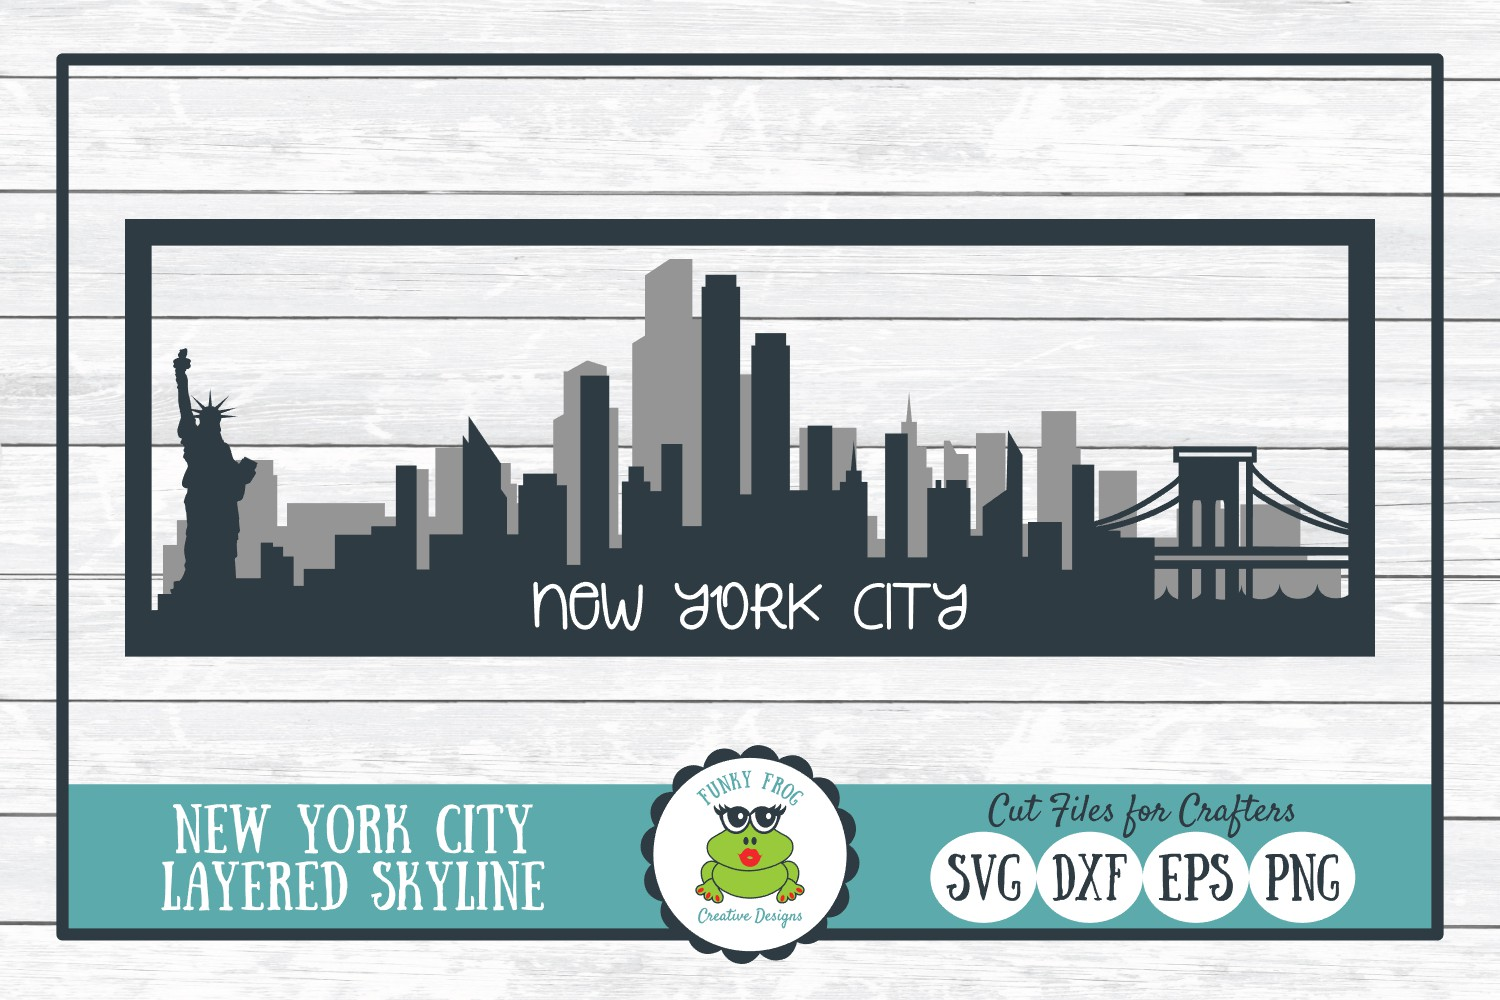 New York City Layered Skyline SVG Cut File for Crafters example image 1